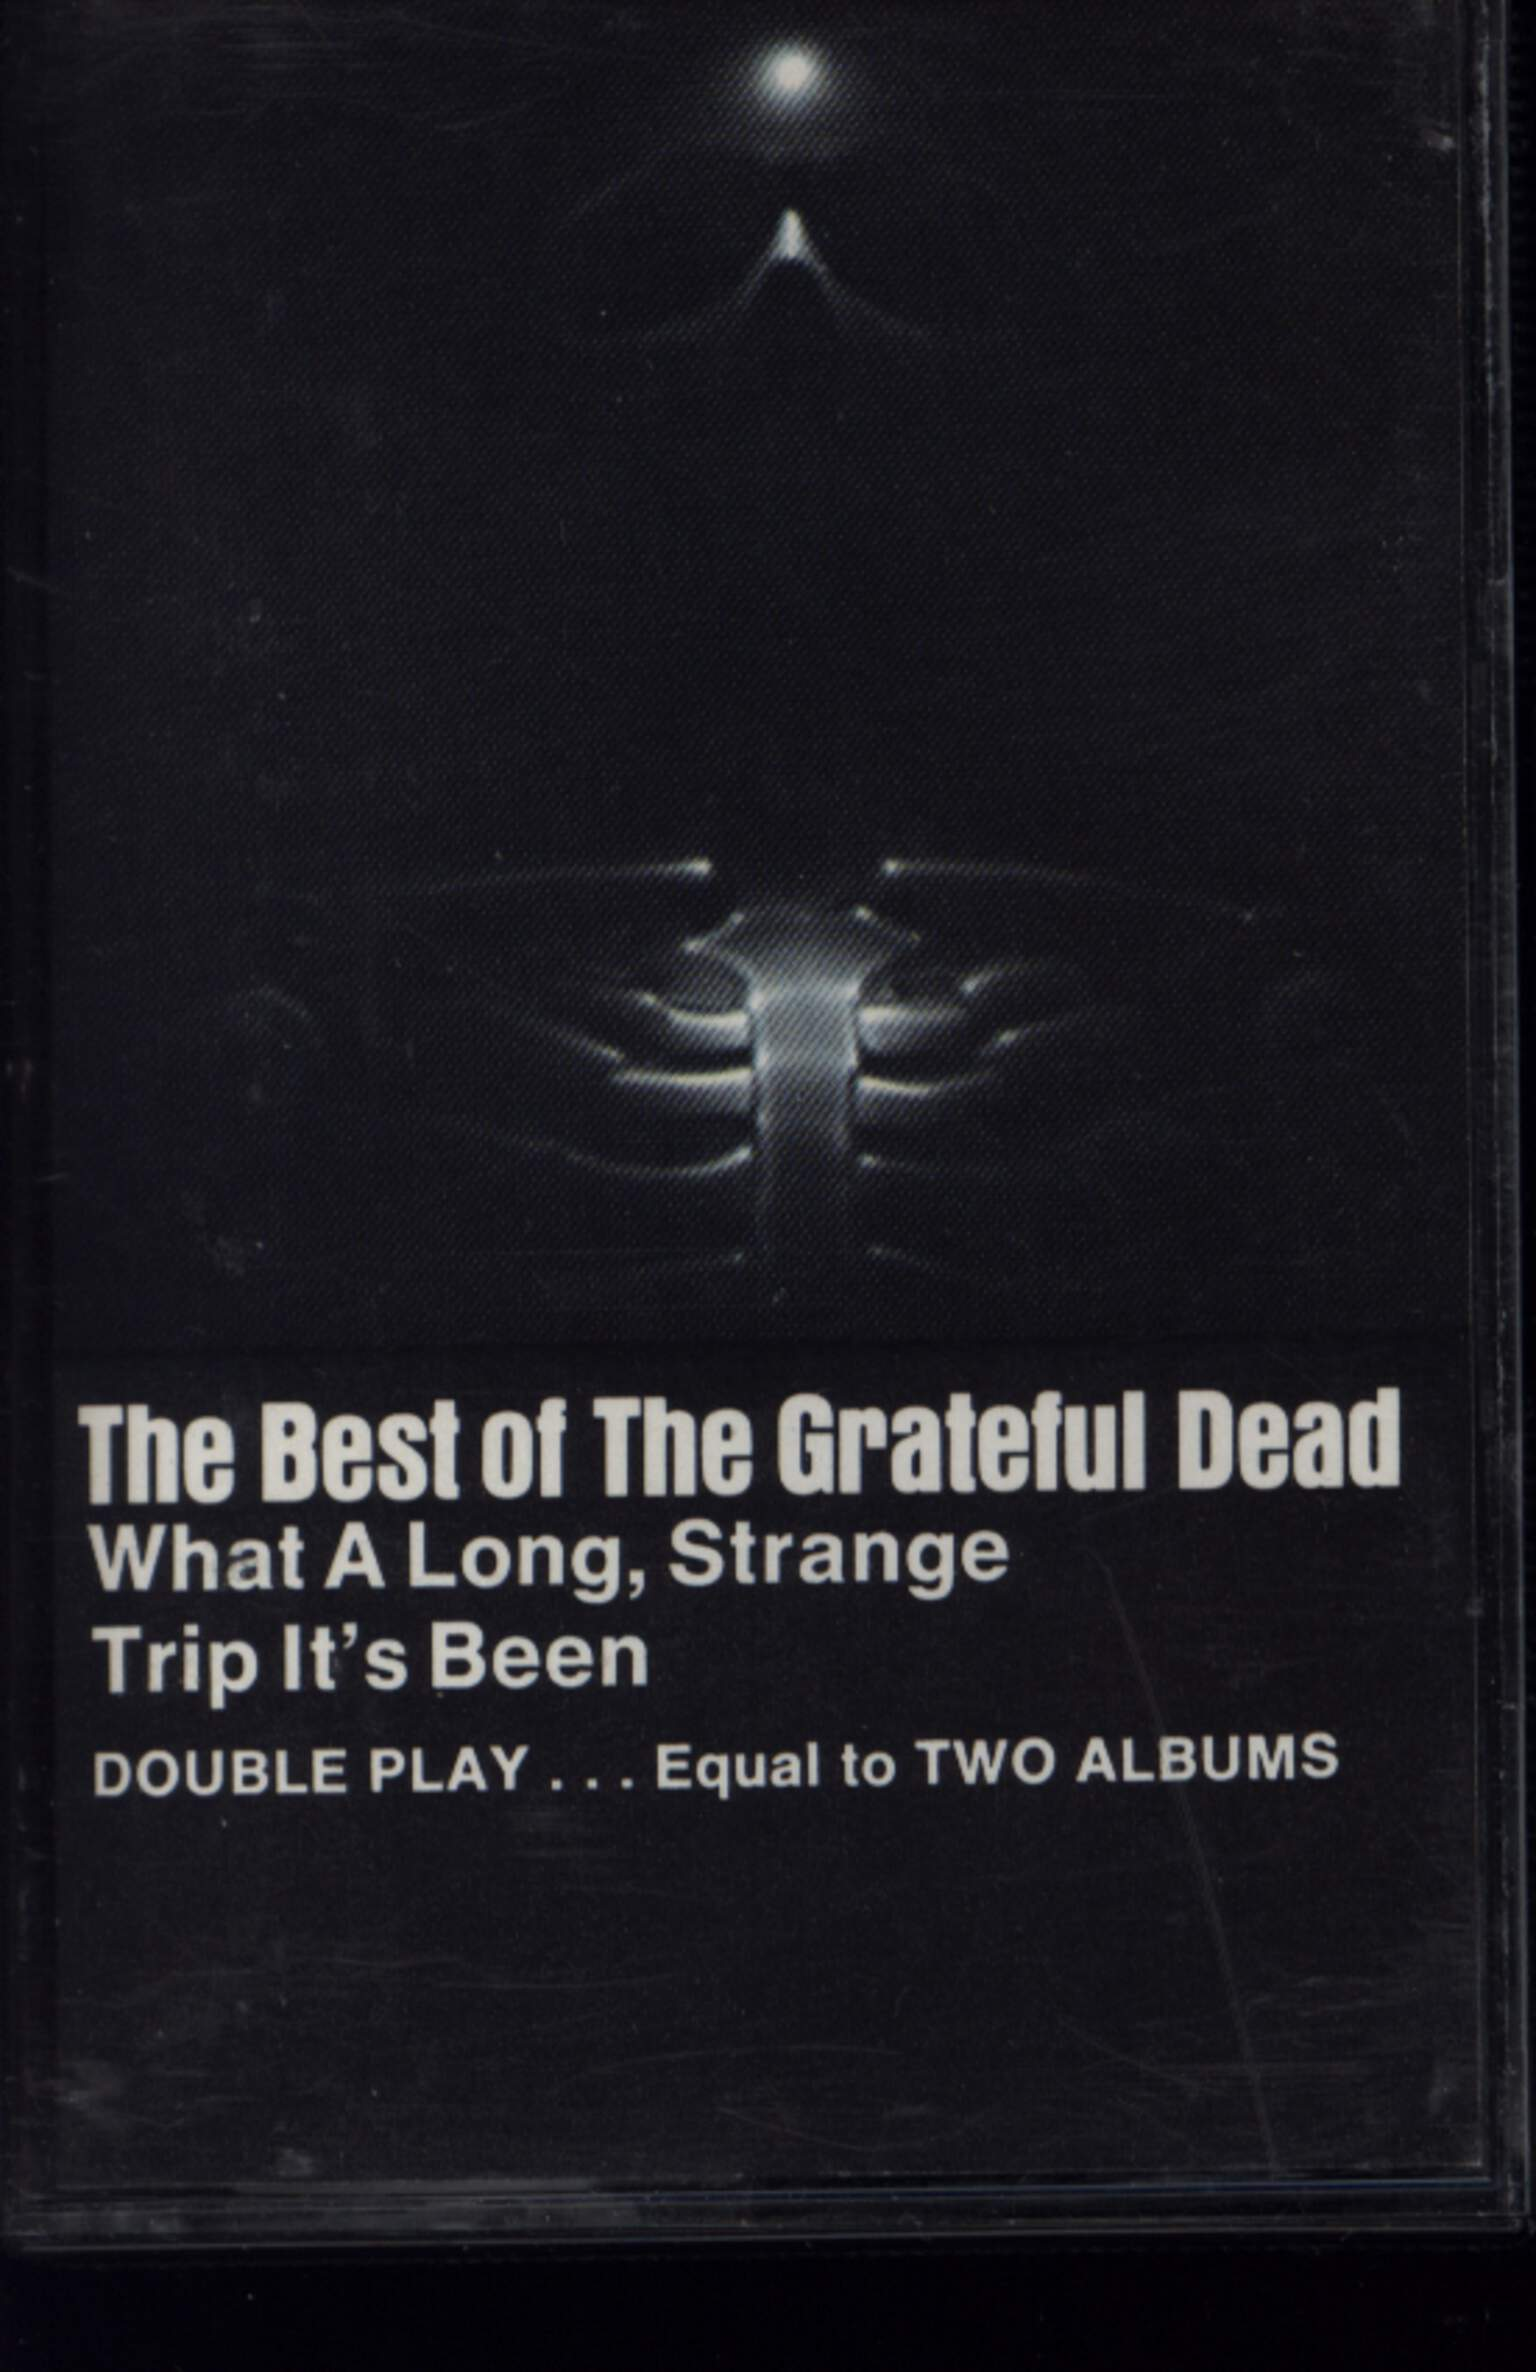 The Grateful Dead: What A Long Strange Trip It's Been: The Best Of The Grateful Dead, Compact Cassette